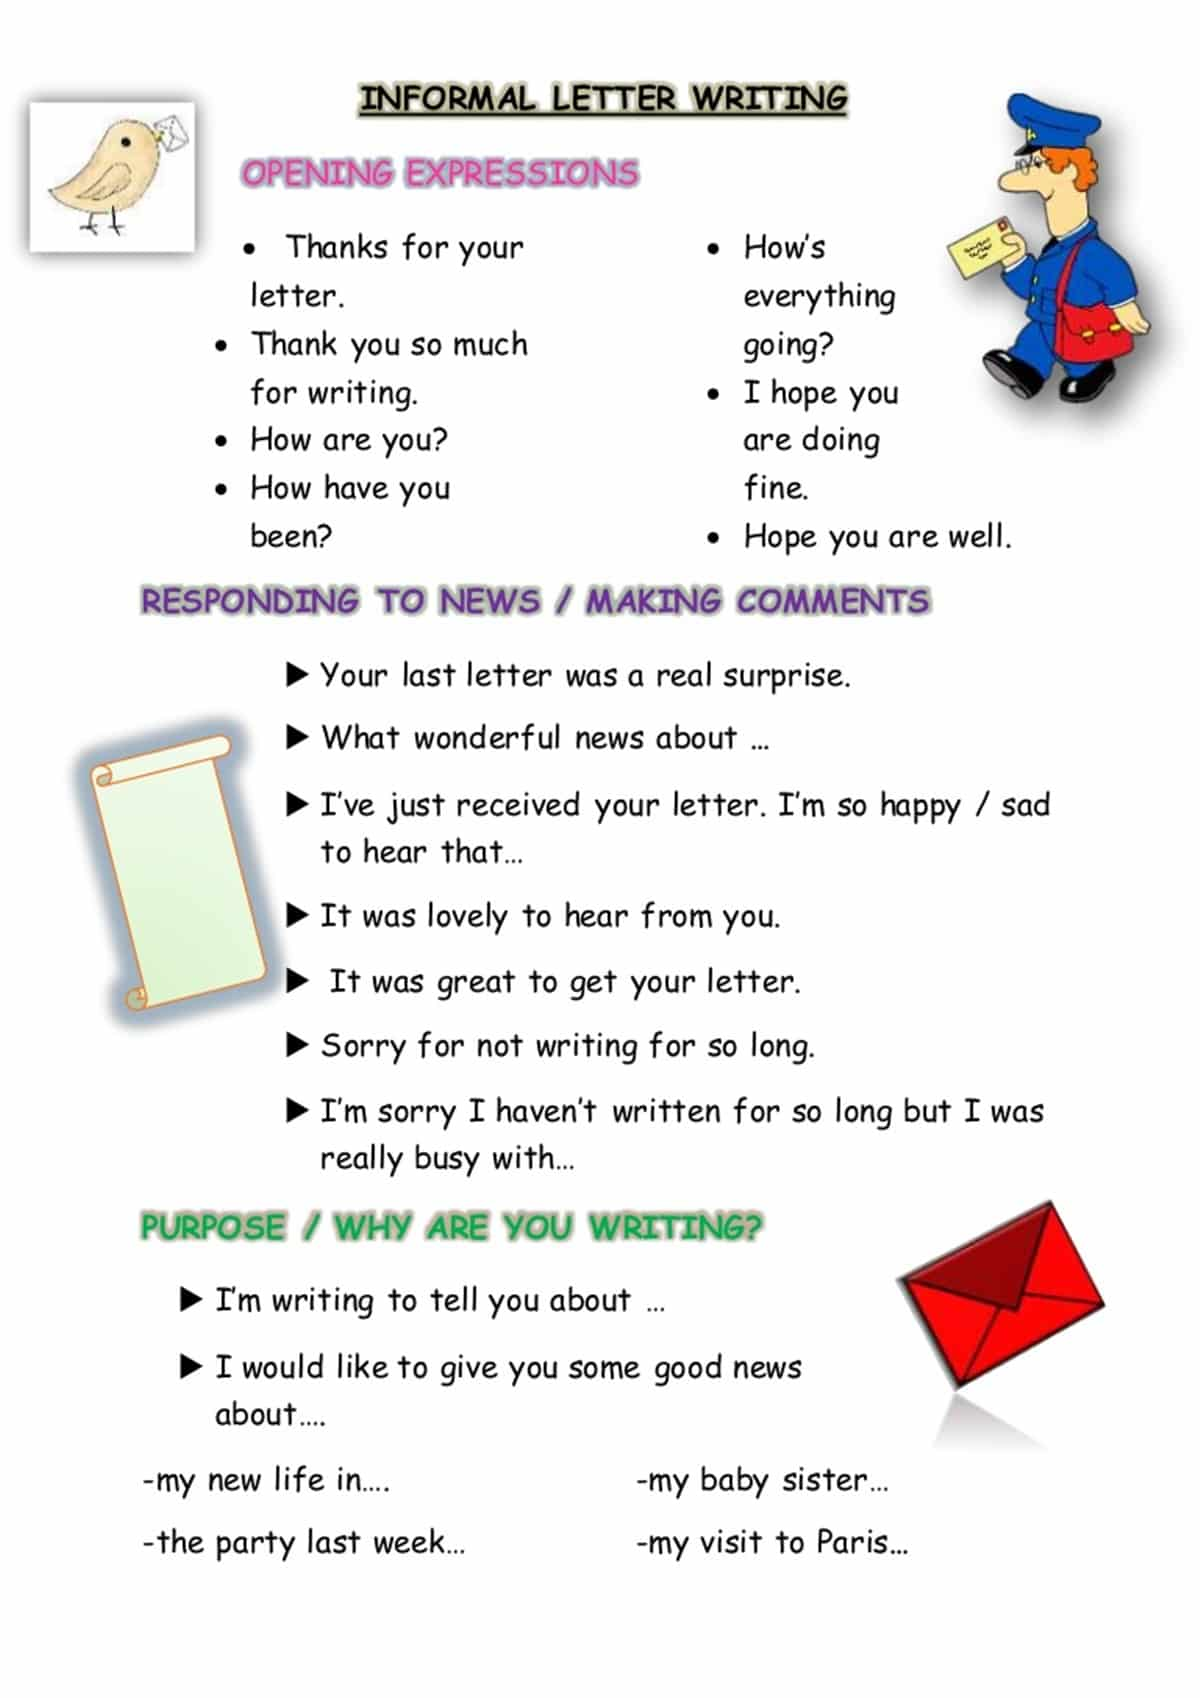 How To Write Informal Letters In English With Examples